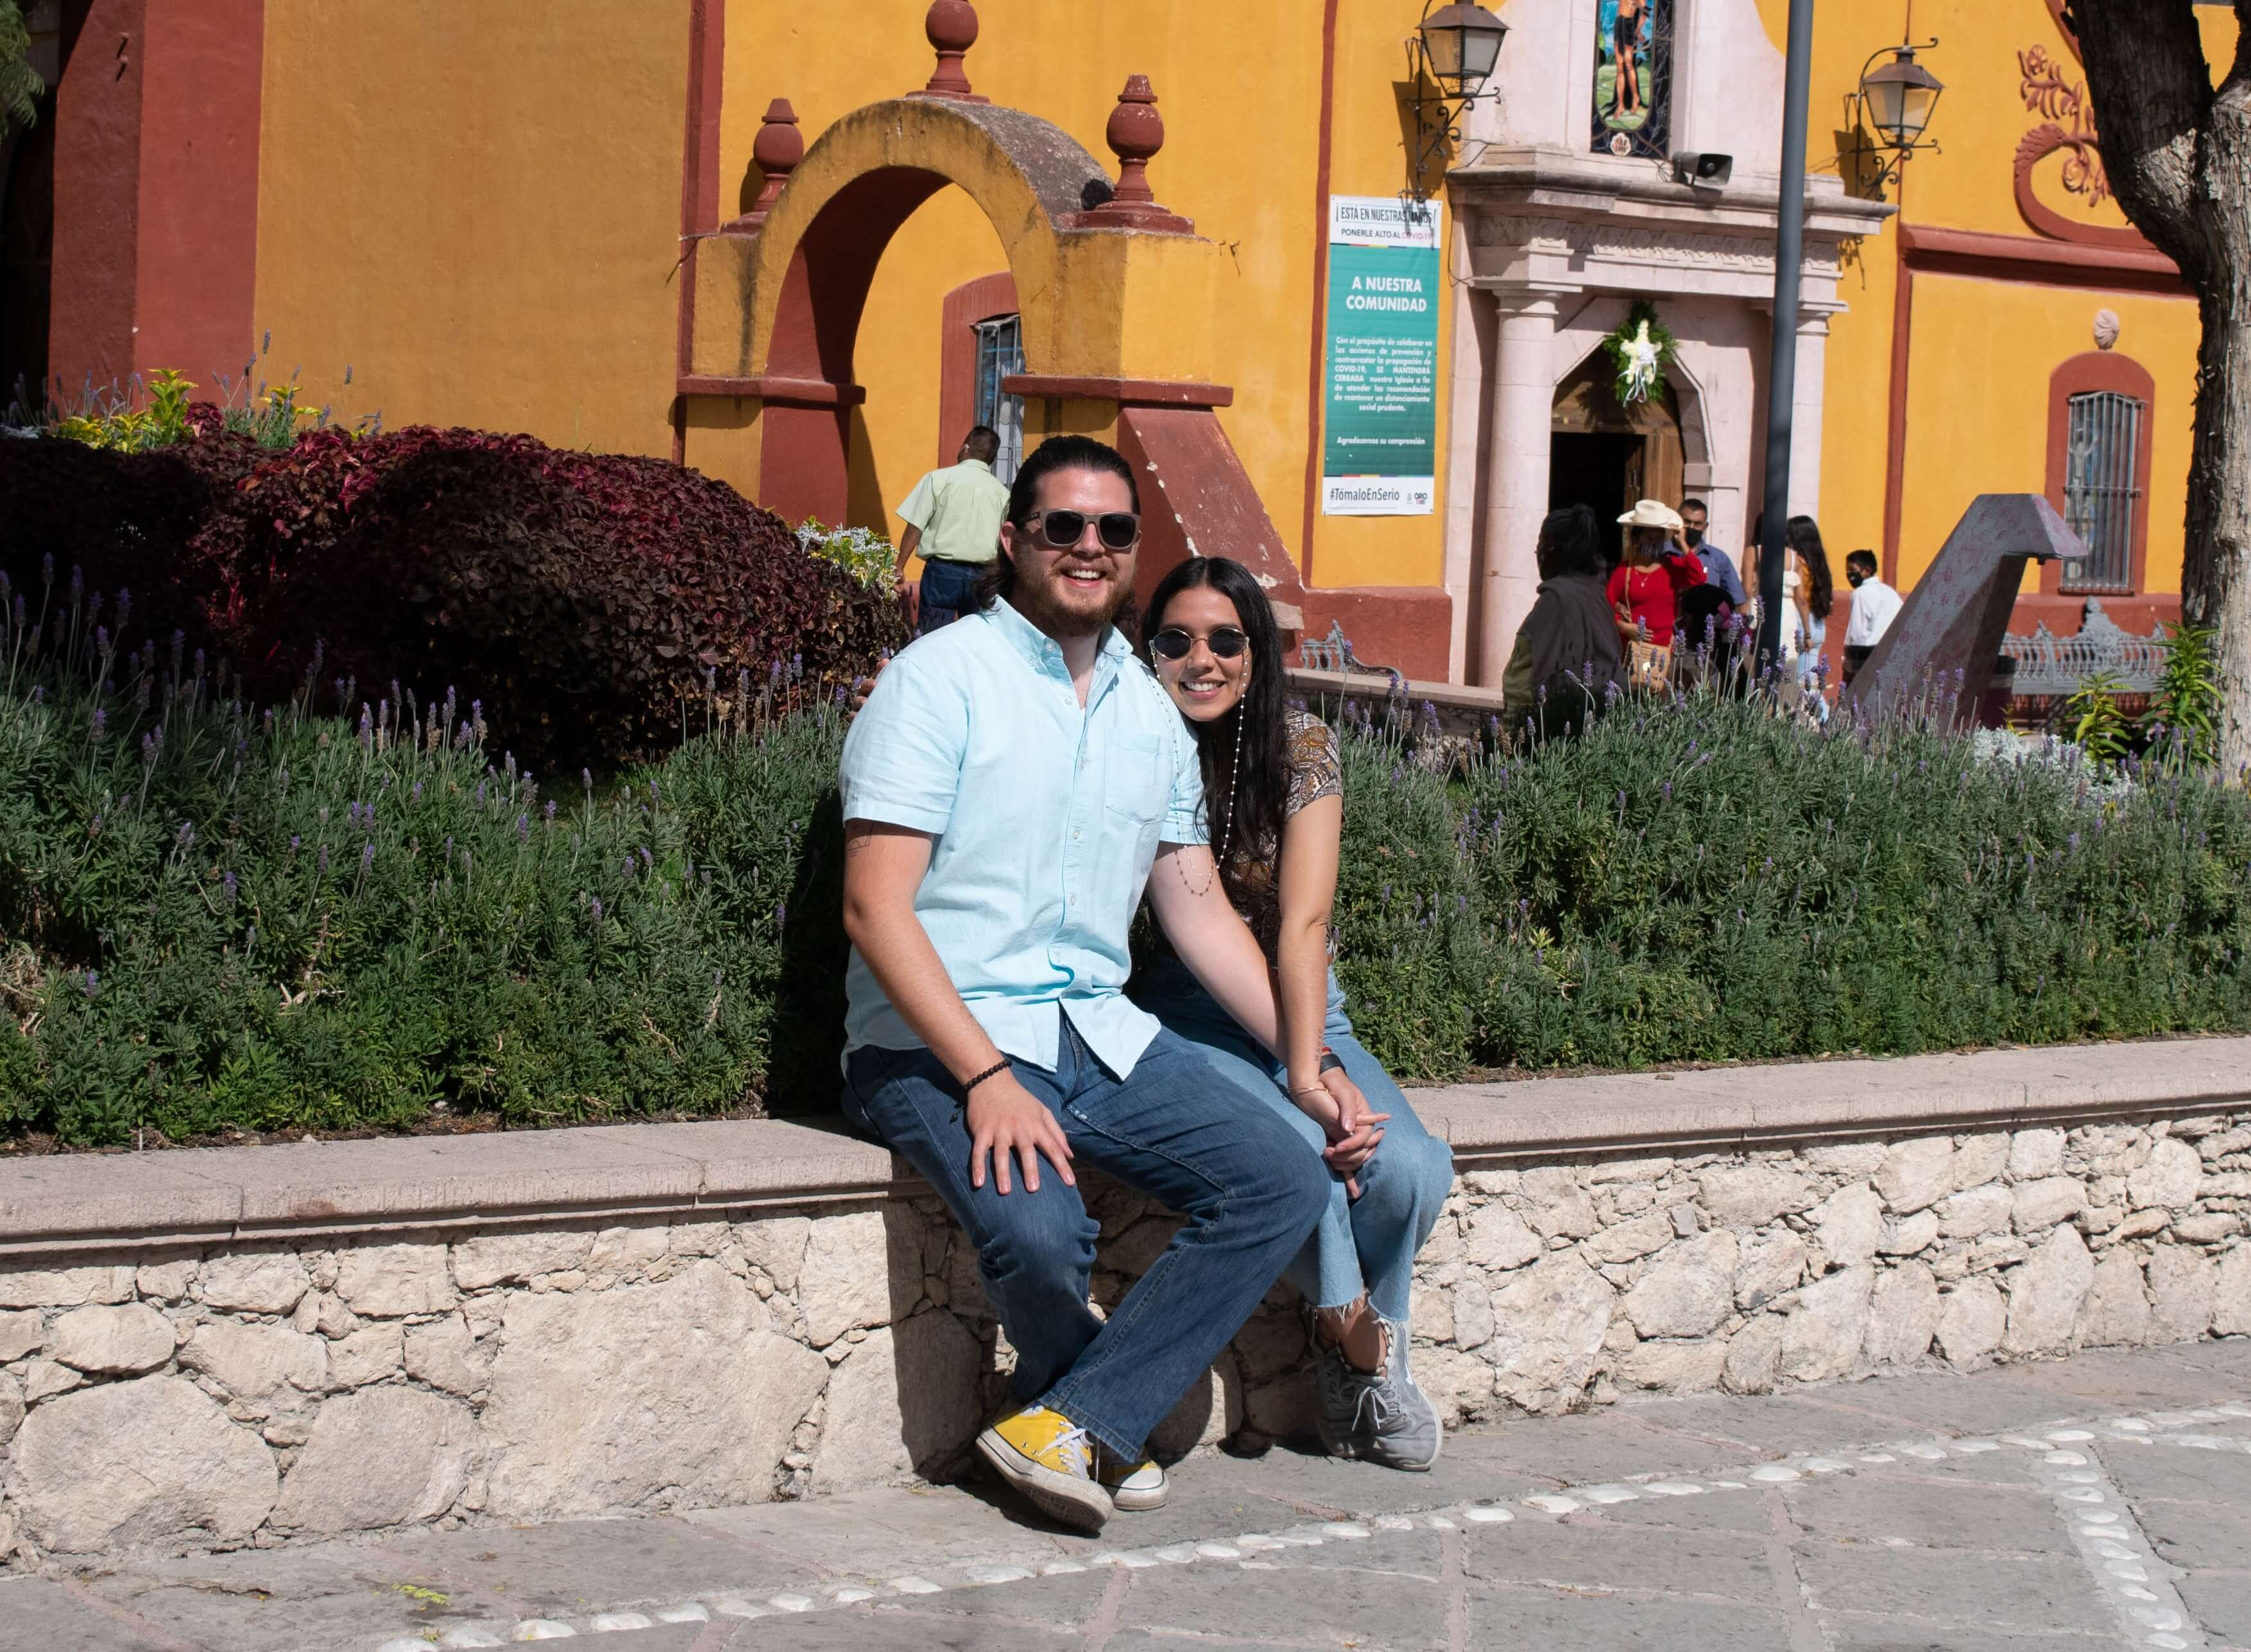 Couple sitting on bench in front of yellow building